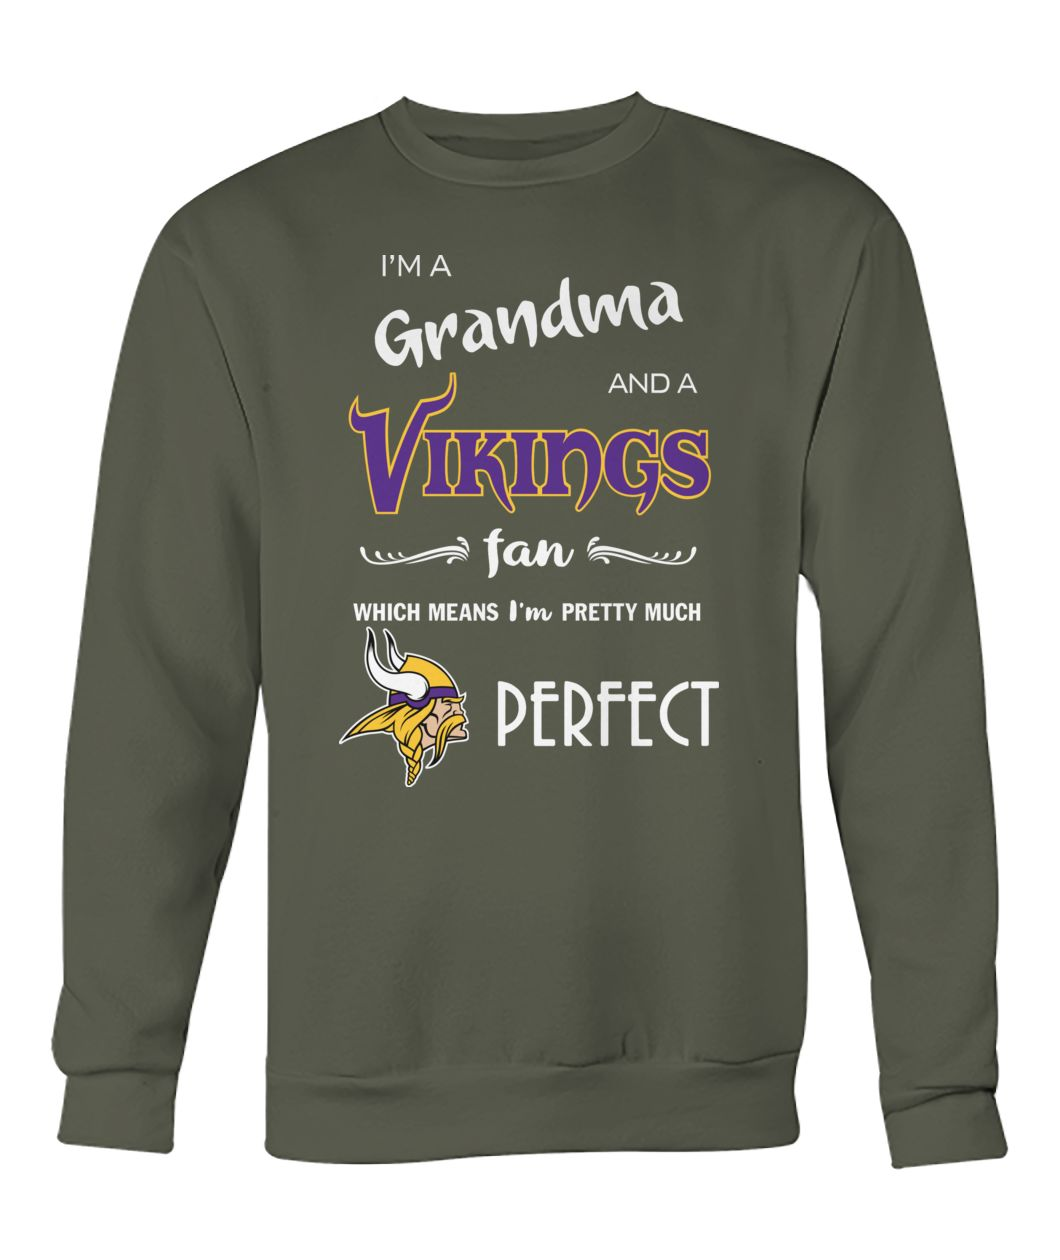 I'm a grandma and a Vikings fan which means I'm pretty much perfect gildan crew neck sweatshirt